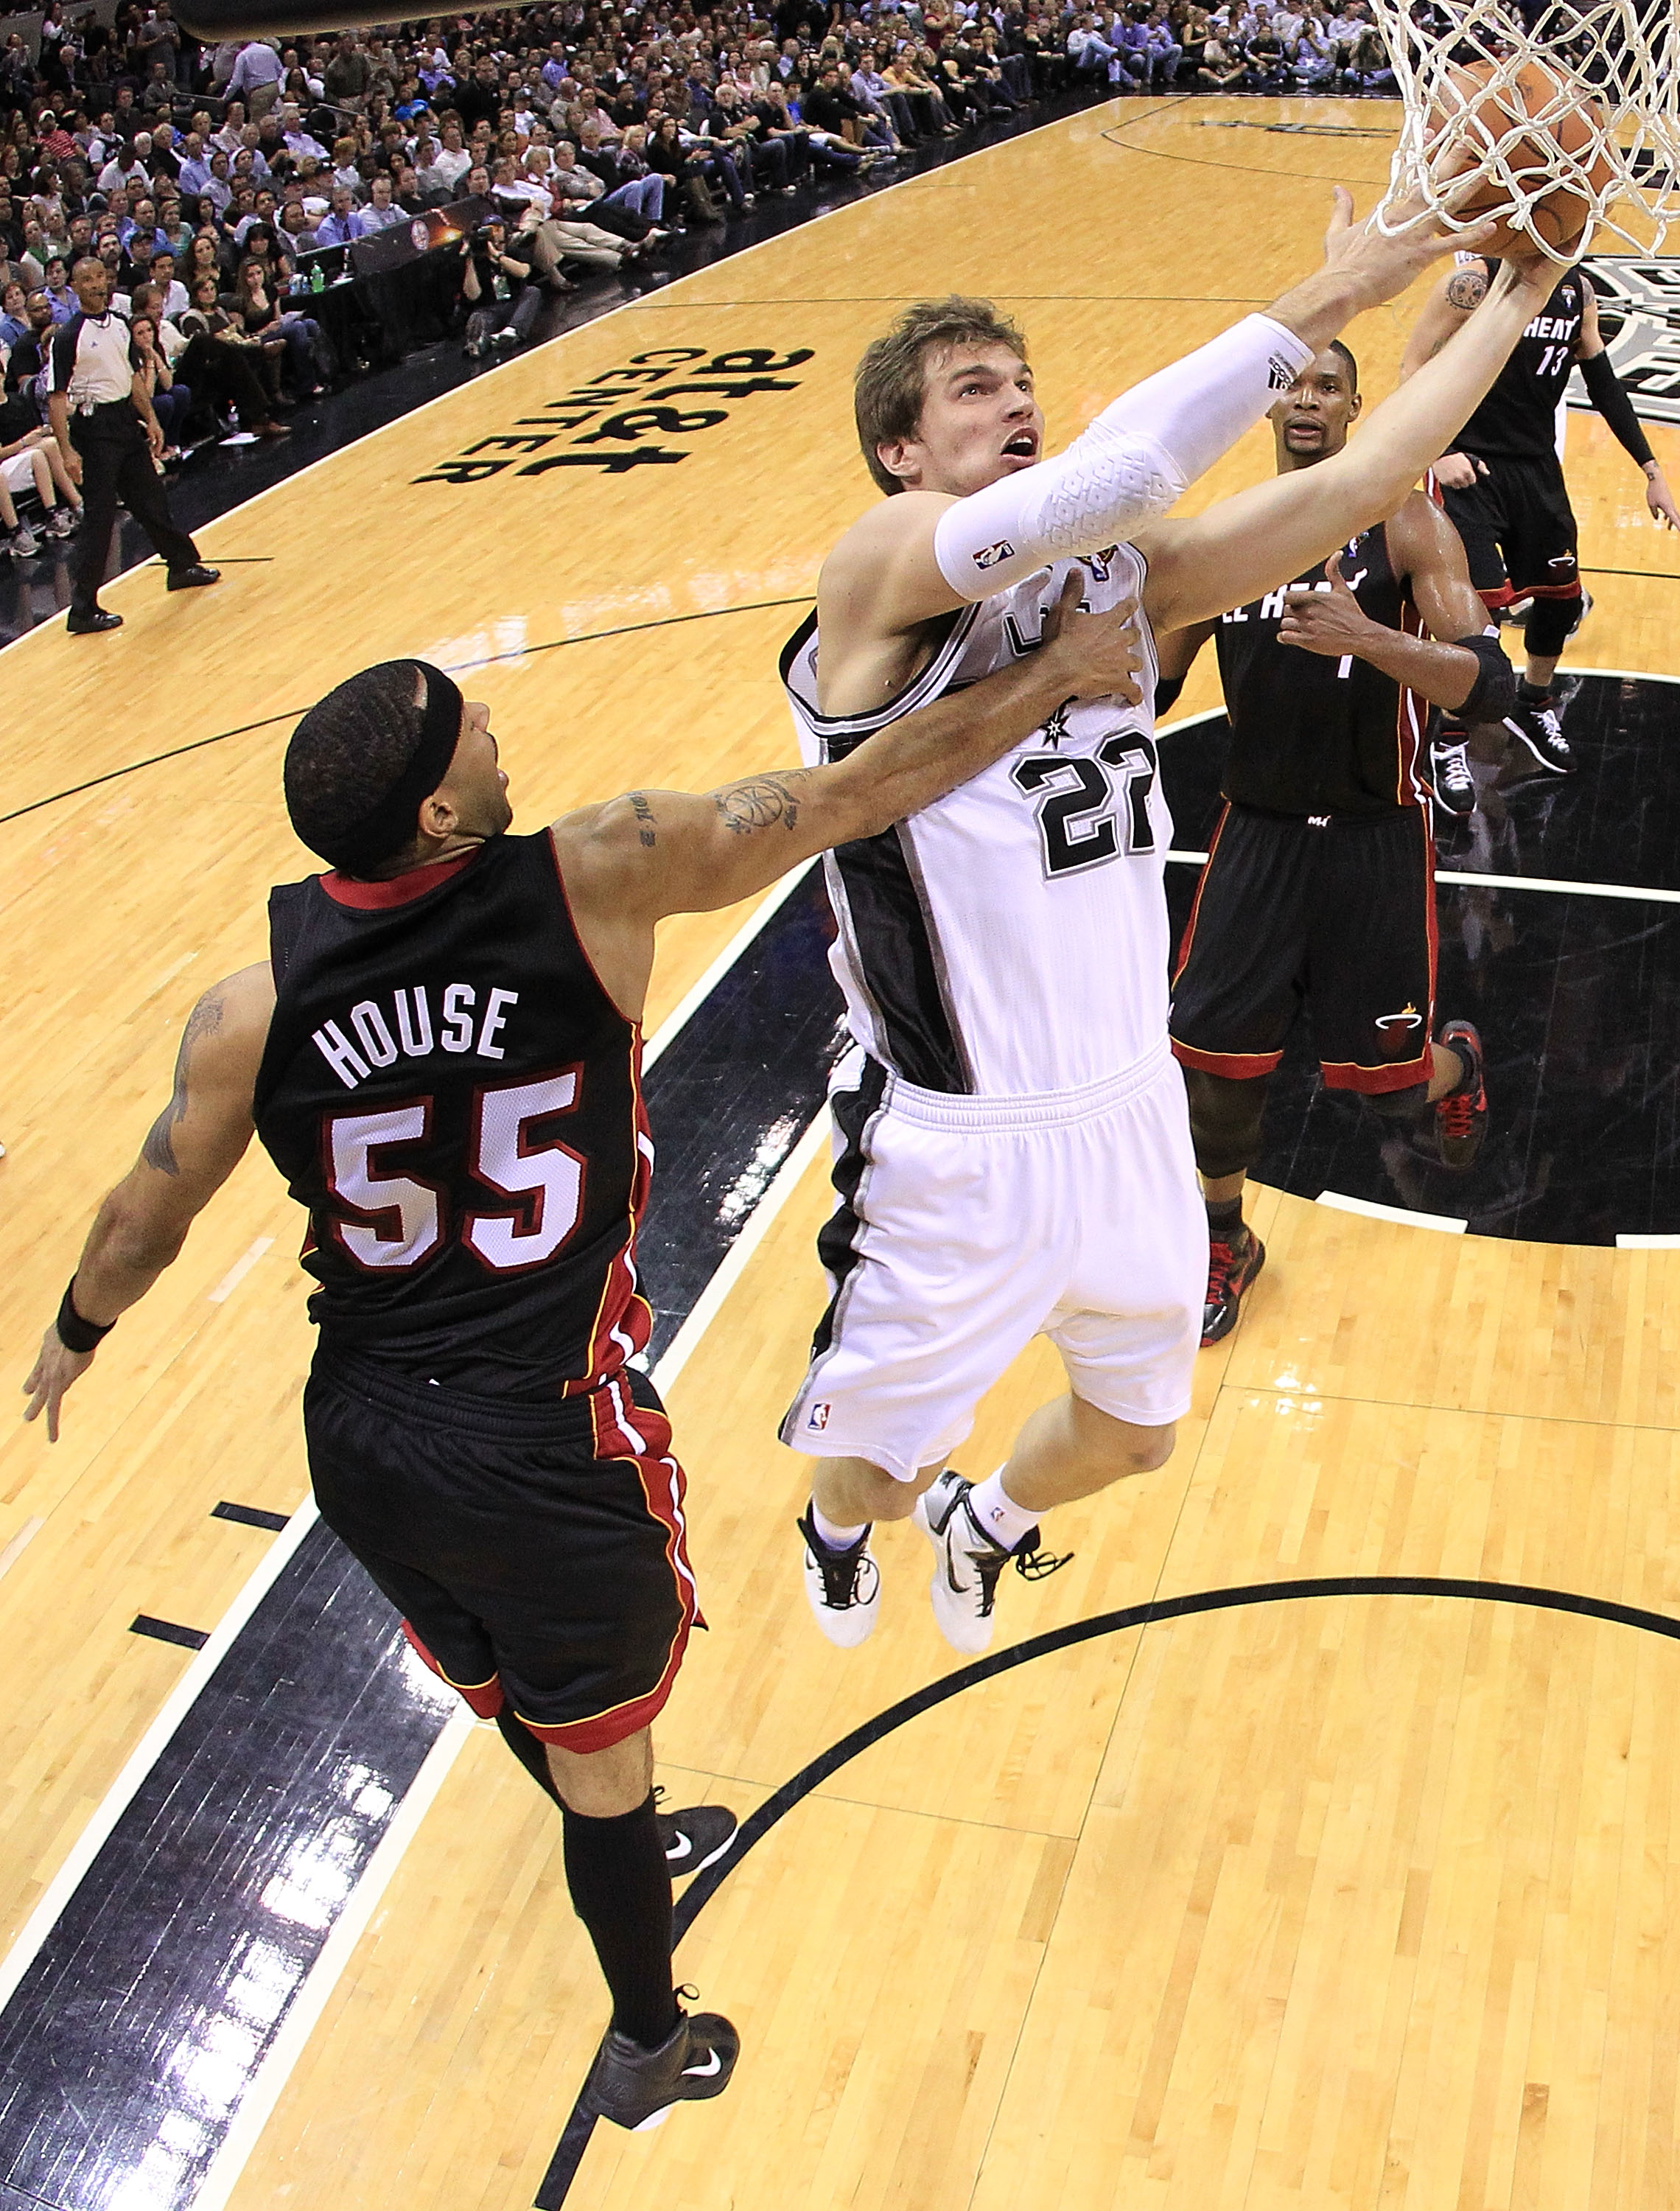 SAN ANTONIO, TX - MARCH 04:  Forward Tiago Splitter #22 of the San Antonio Spurs takes a shot against Eddie House #55 of the Miami Heat at AT&T Center on March 4, 2011 in San Antonio, Texas.   NOTE TO USER: User expressly acknowledges and agrees that, by